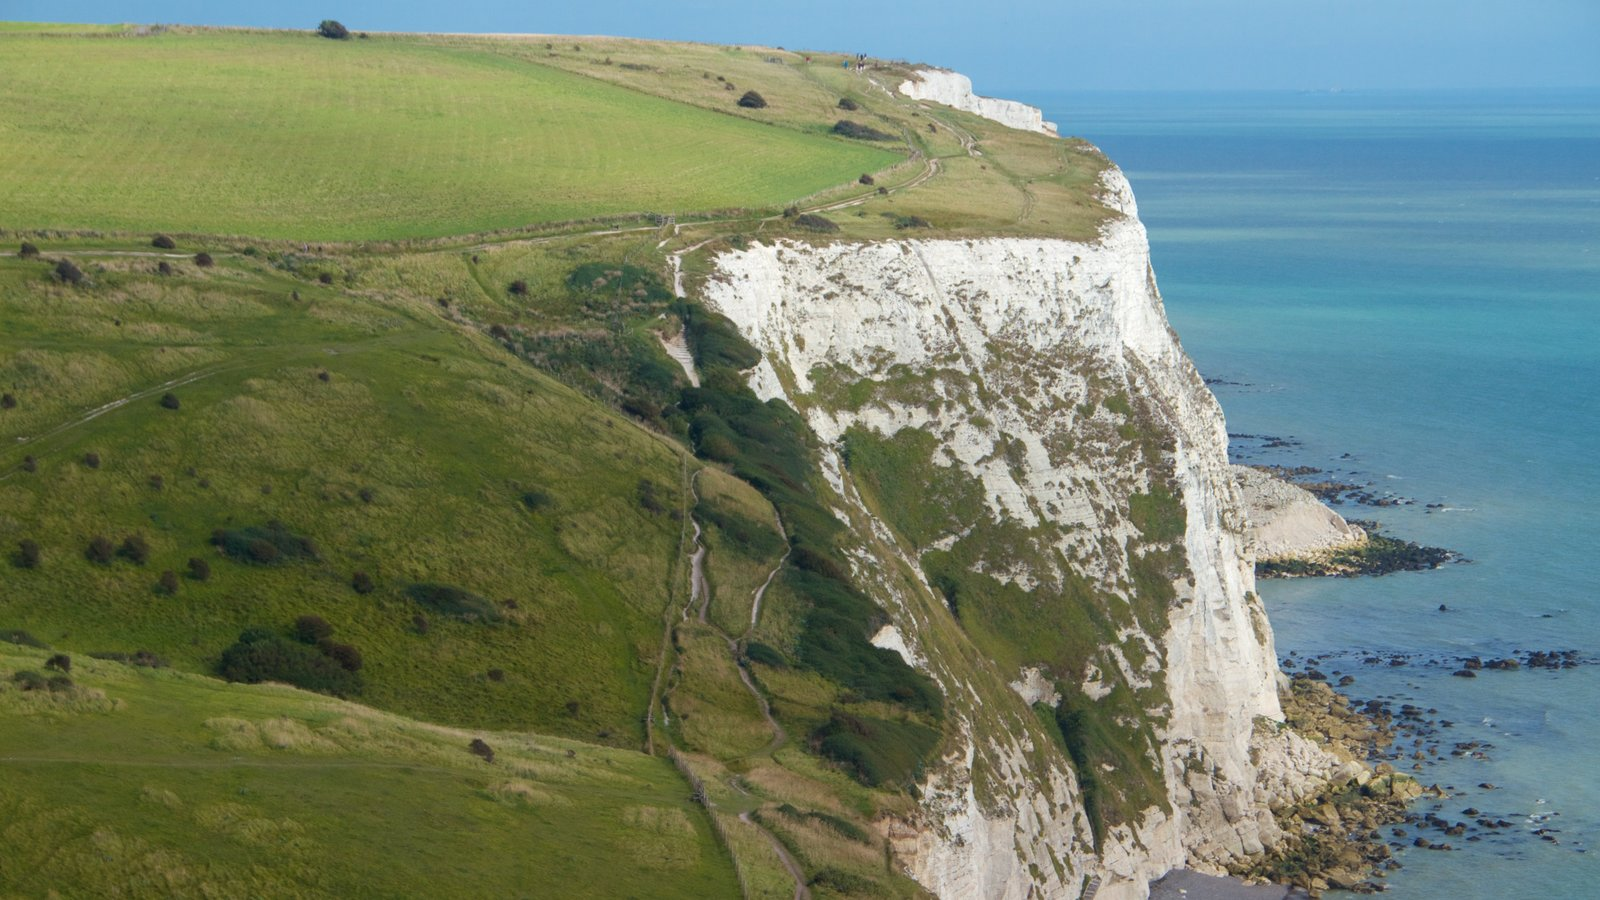 White Cliffs of Dover featuring general coastal views, tranquil scenes and rugged coastline